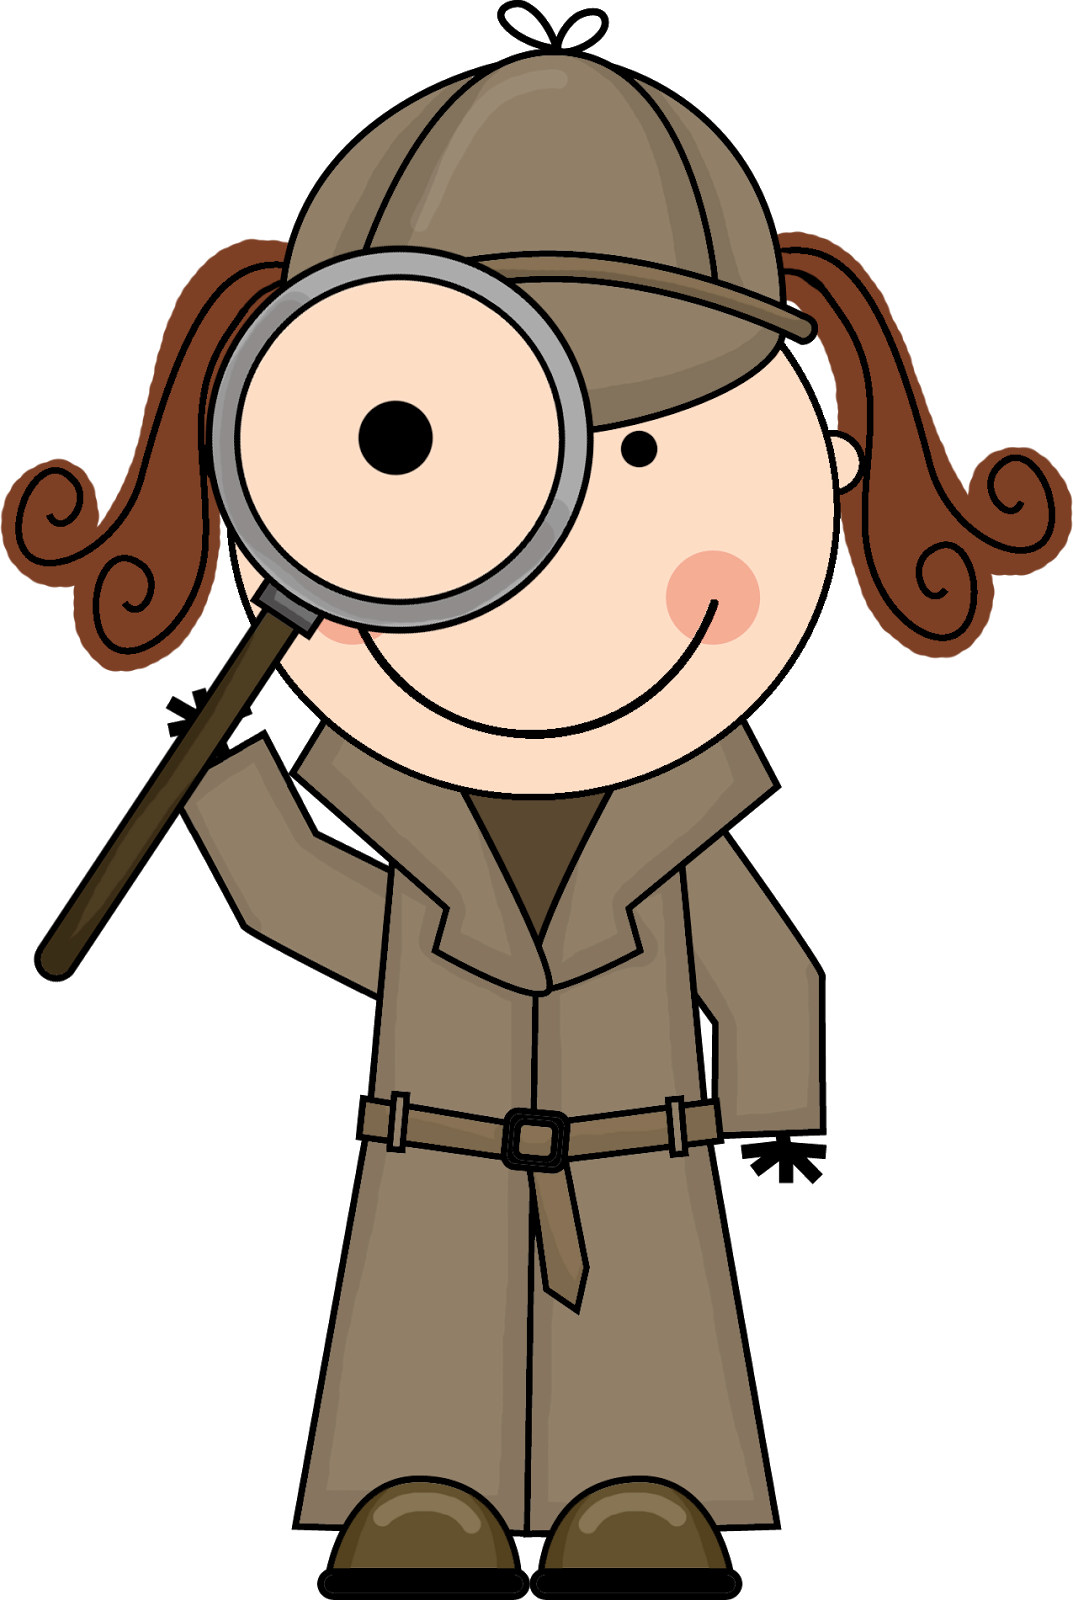 Kid Detective Clipart   Clipart Panda   Free Clipart Images